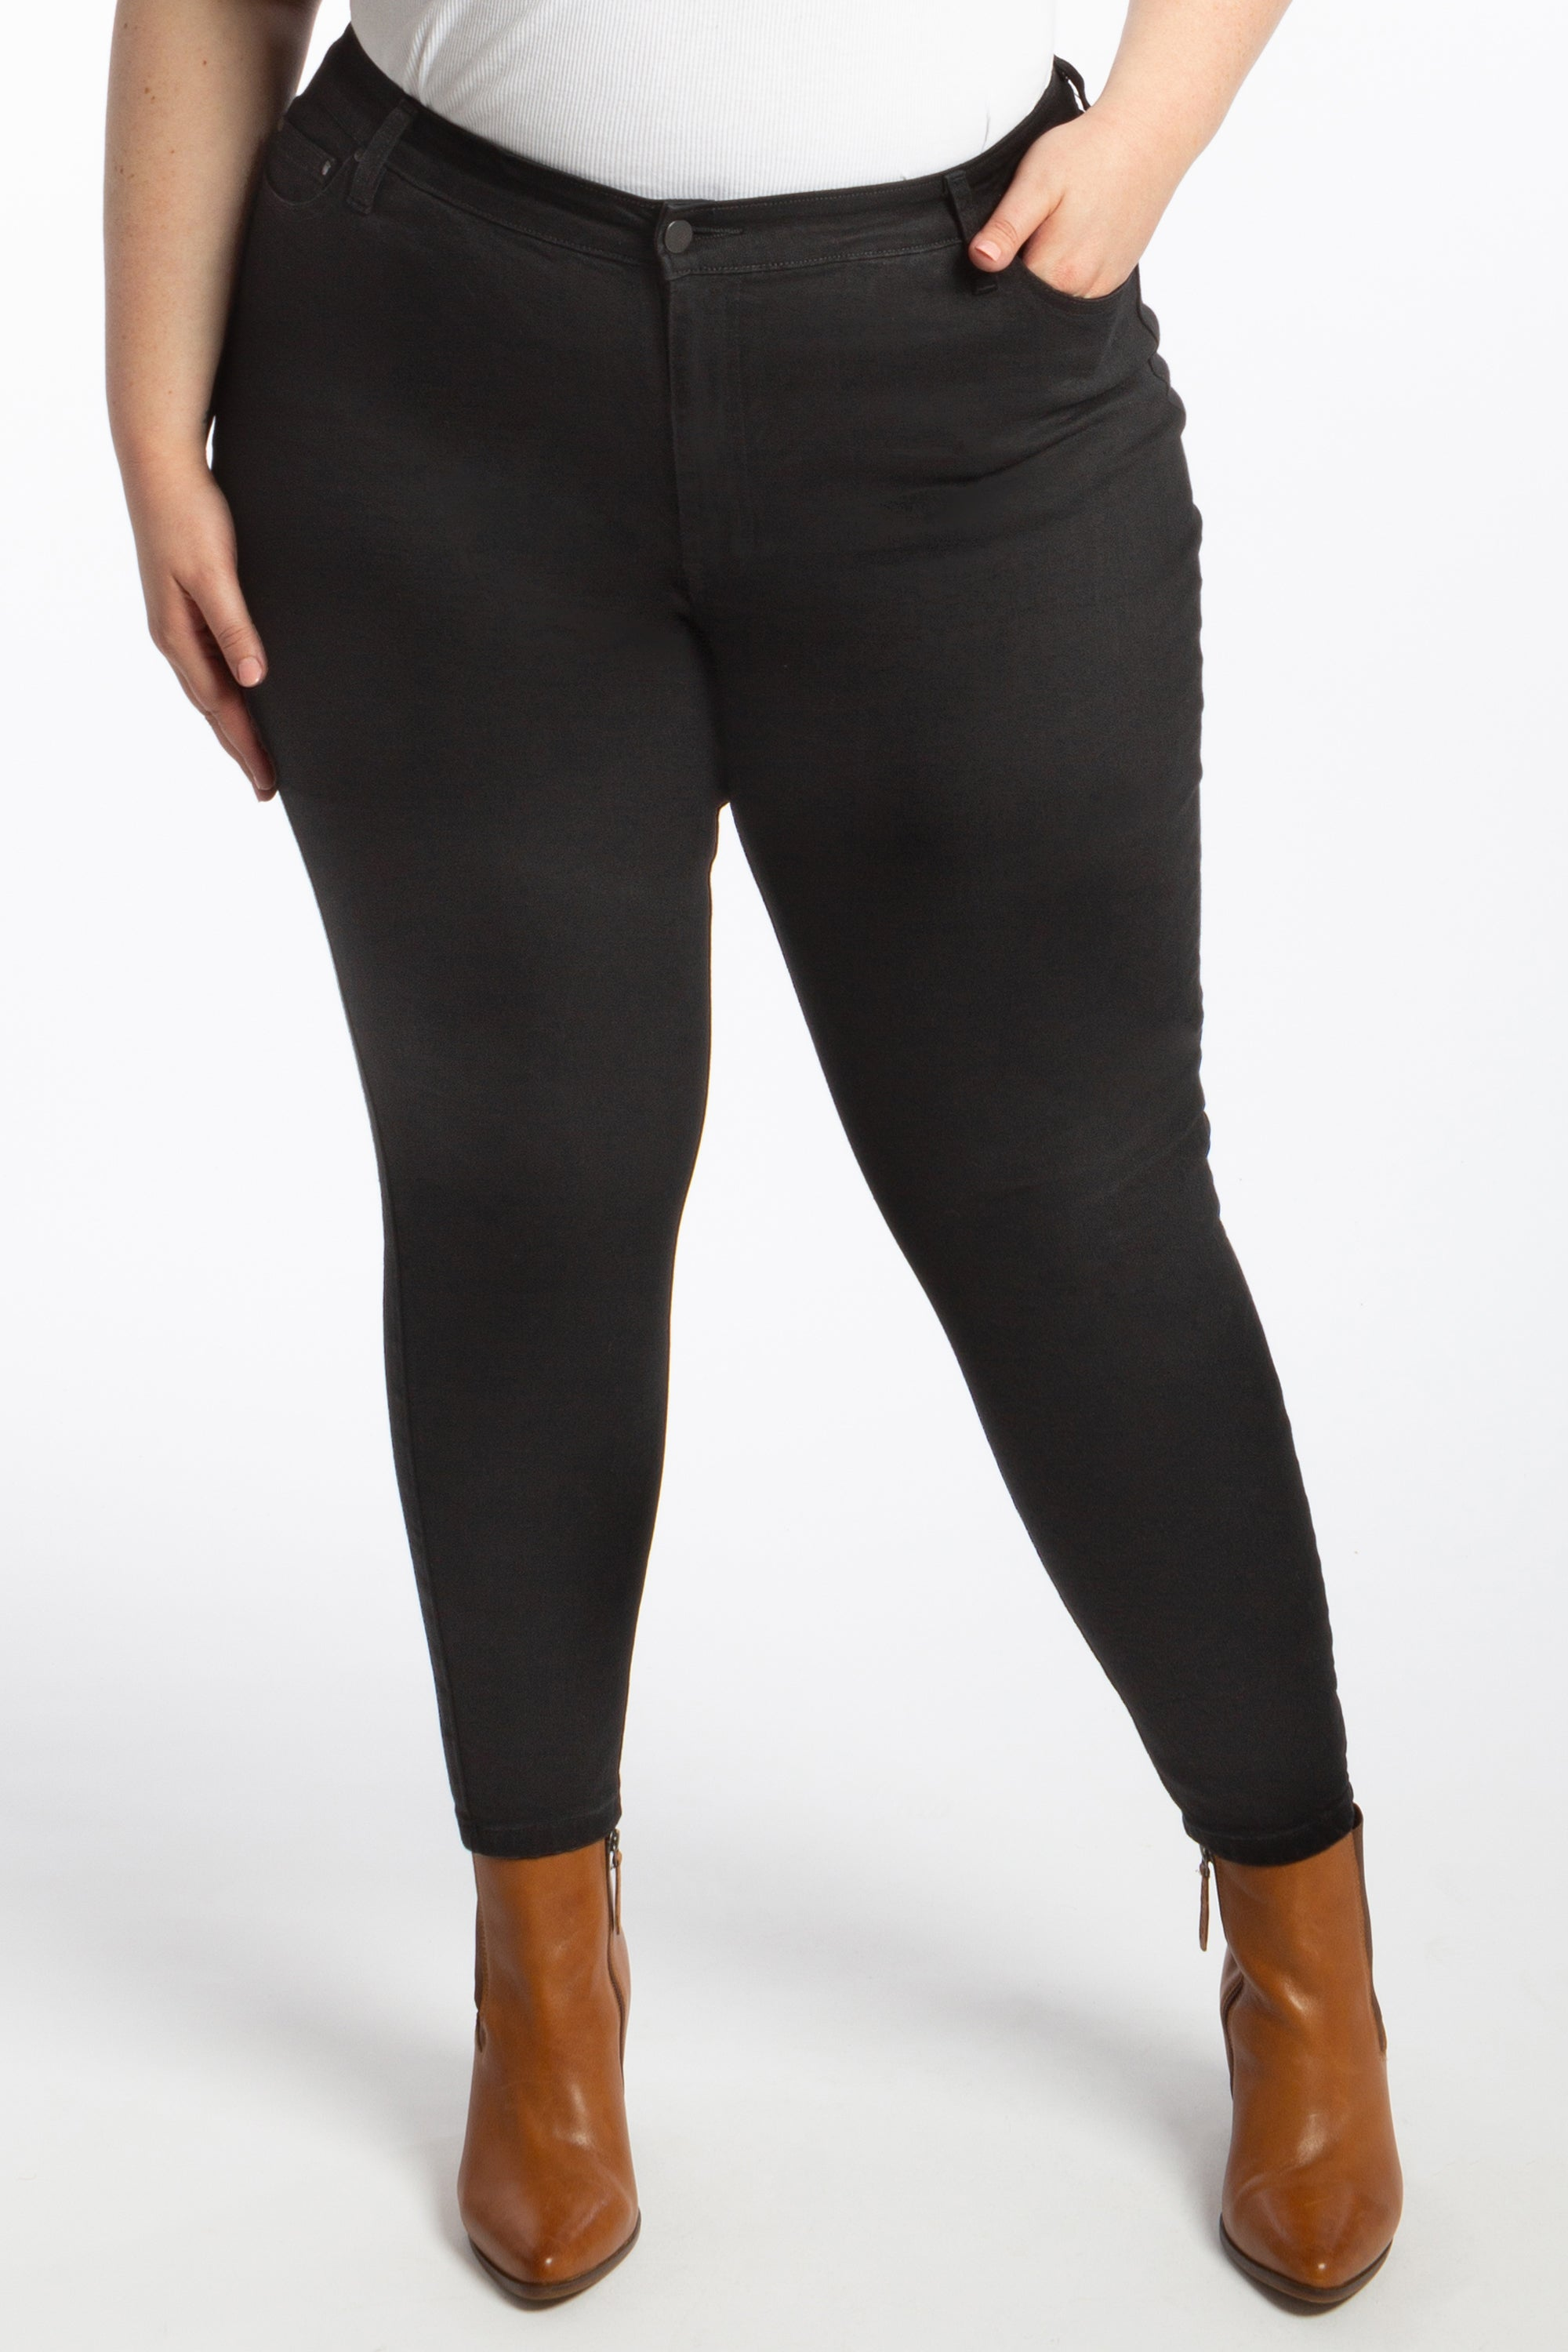 Black Betty Denim - Ankle Grazer